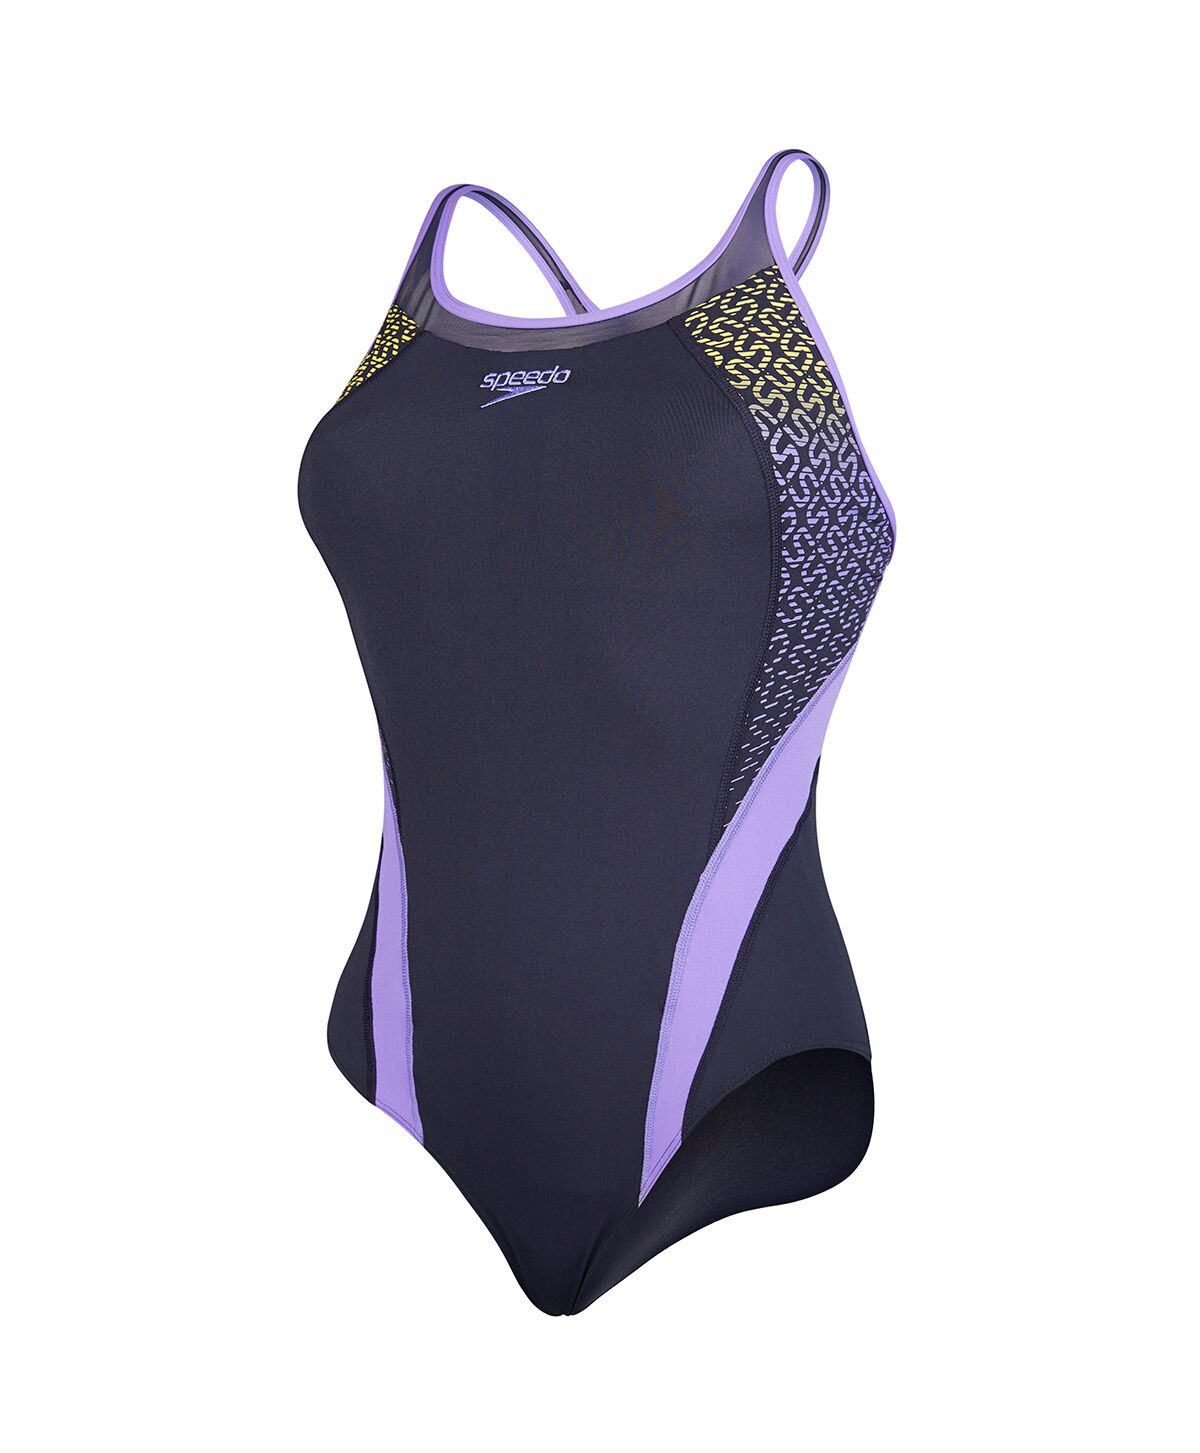 Women's Speedo Fit Body Positioning Kickback Swimsuit